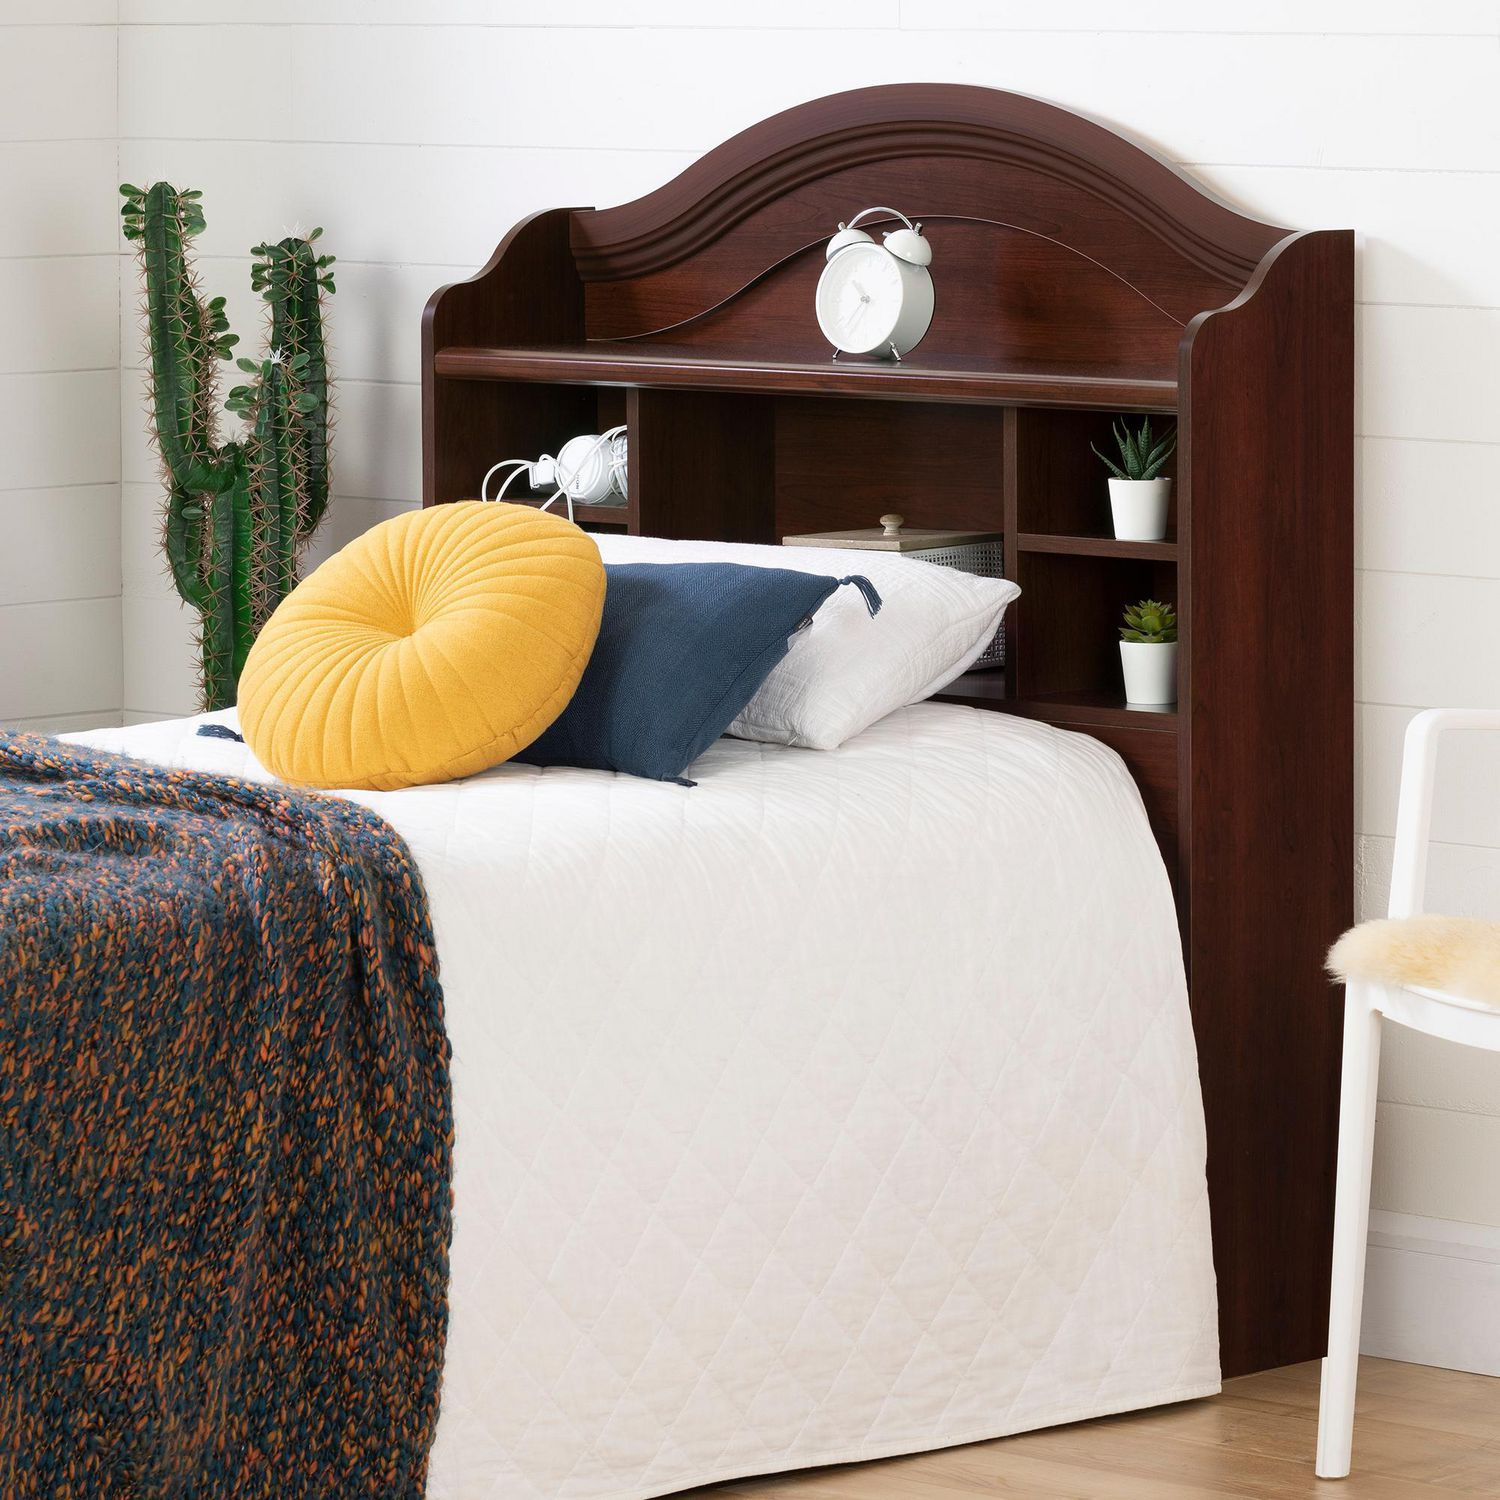 bedheads platform upholstered lifts frames cherry jeweled beds white black an metal bed no with to headboard how fabric sale quilted contemporary for cloth furniture and queen headboards frame bedroom tufted single king size of make leather betty wooden covers full tall